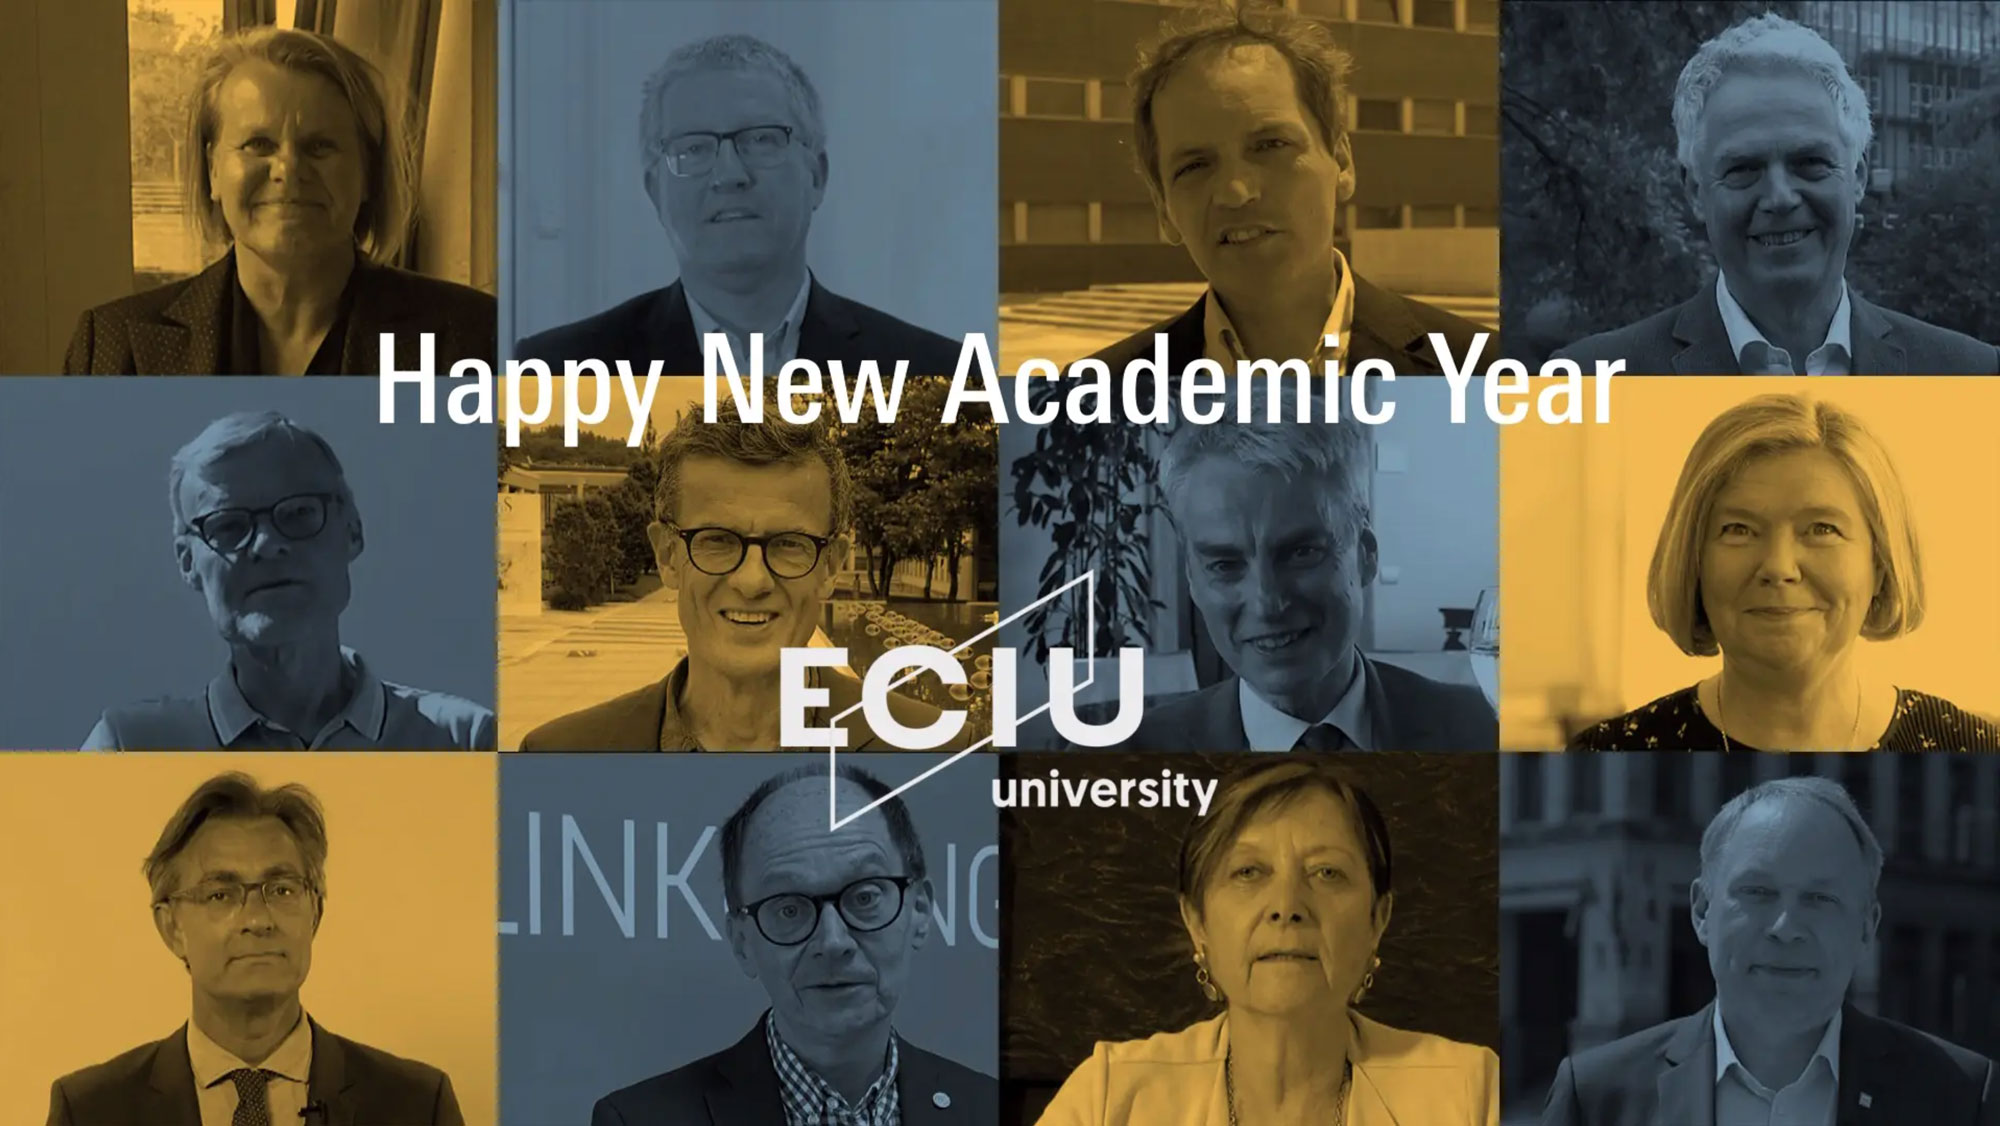 Happy New Academic Year from the ECIU University